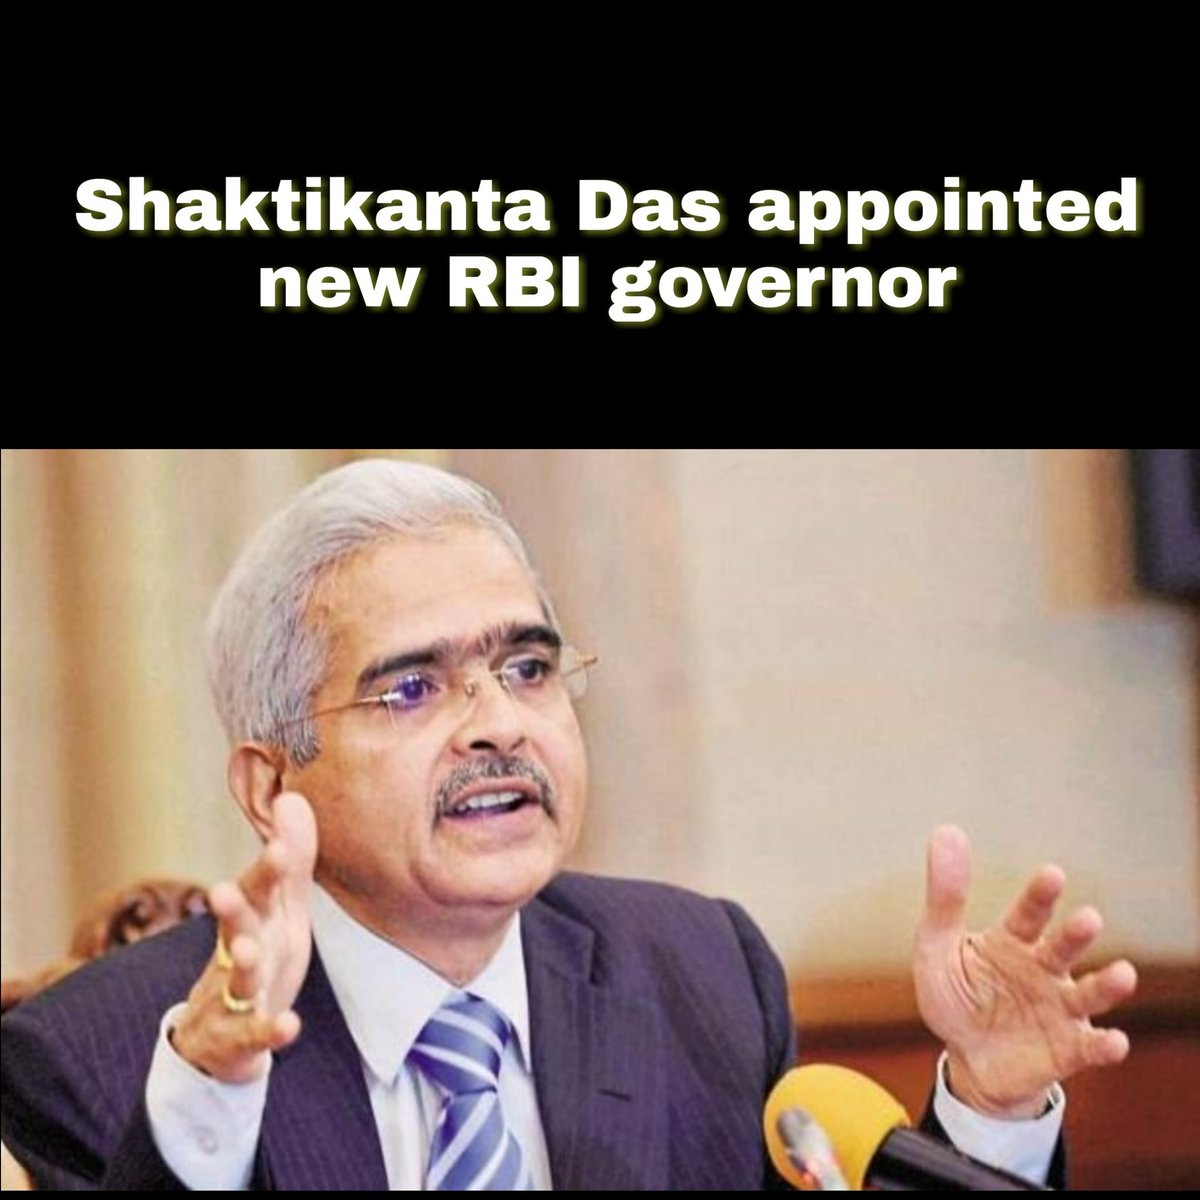 Shaktikanta Das appointed new RBI governor after Urjit Patel resigned on Monday  #ShaktikantaDas #RBI   Tag your friends and dont forget to hit like button.#navsari #navsarians #entertainmentpage #surat #comedy #hotelsinnavsari #maroli #trending Navsari 2018pic.twitter.com/wAaZkg5qfk